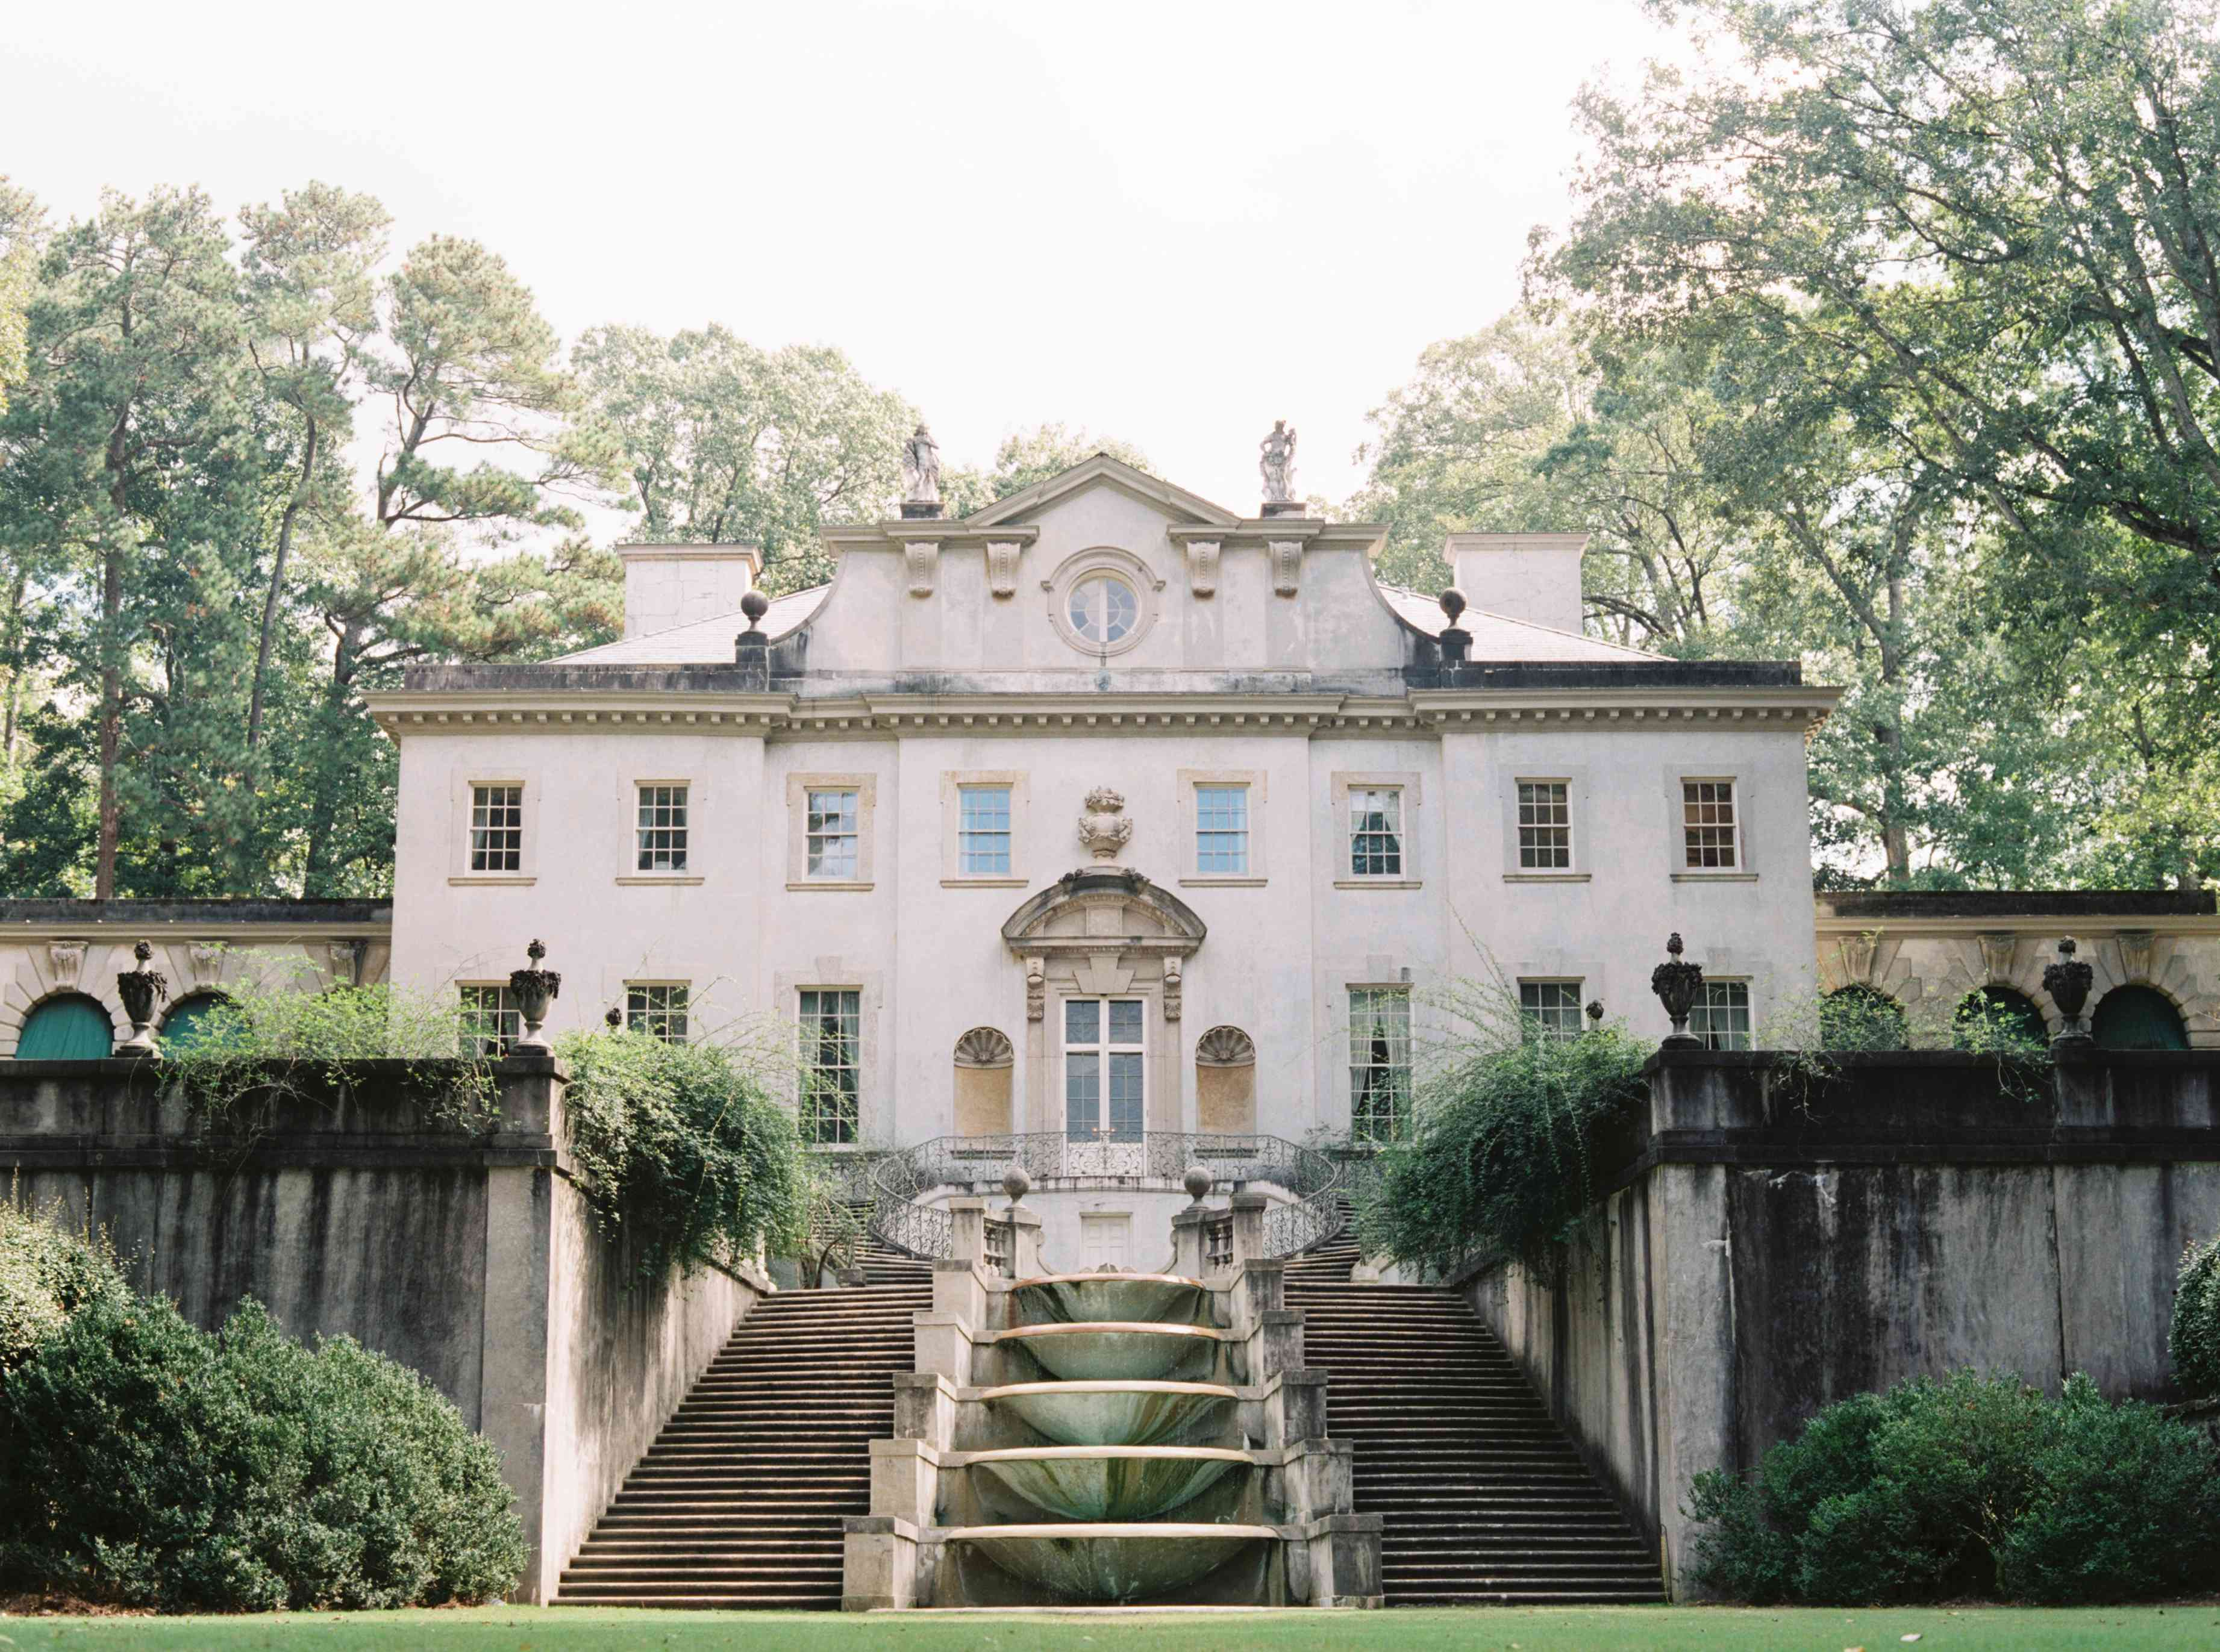 <p>venue swan house and gardens</p><br><br>